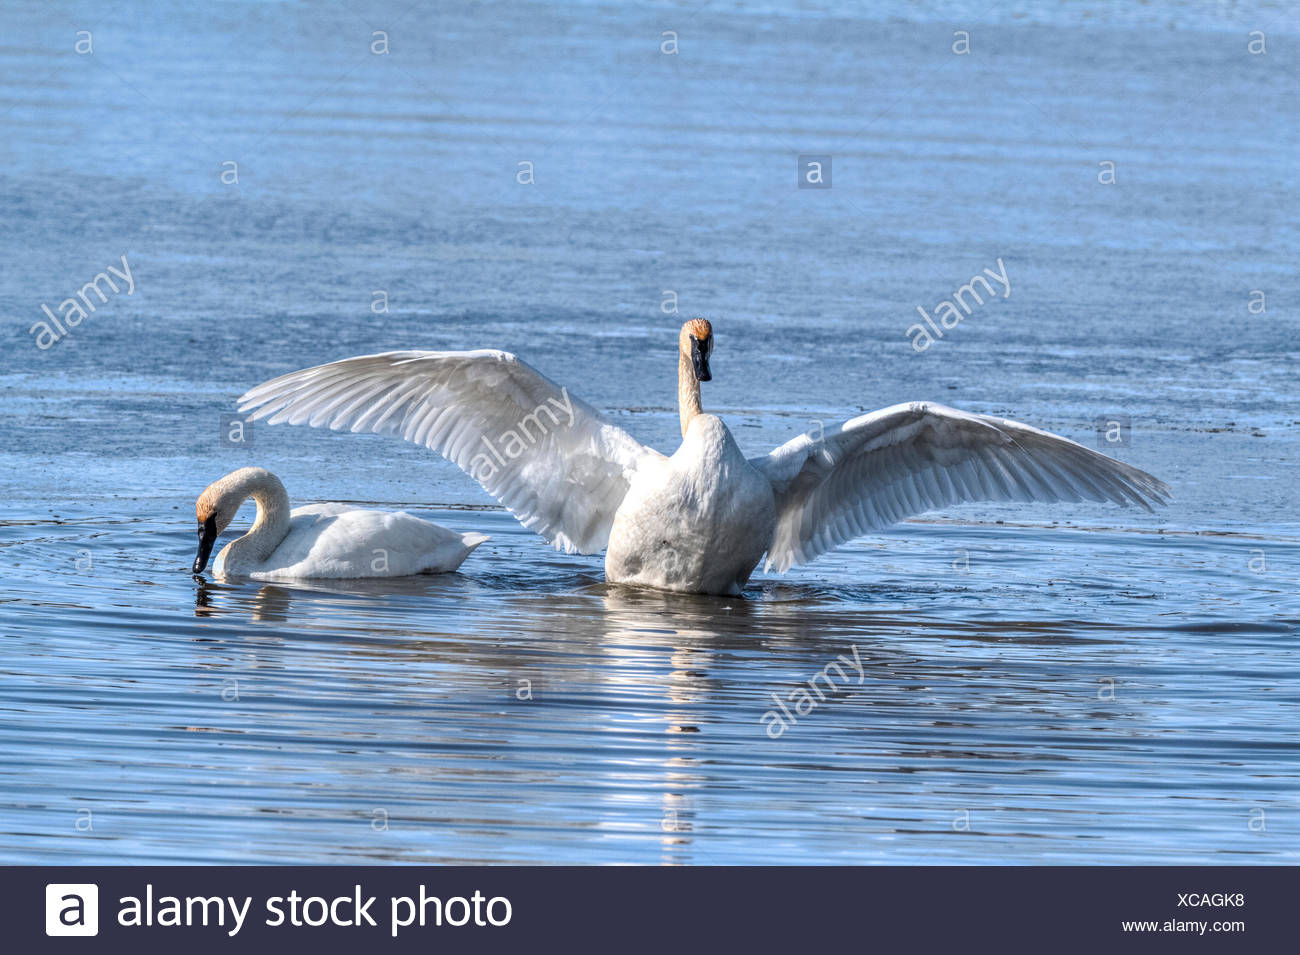 Trumpeter Swan (Cygnus buccinator) Beautiful white Trumpeter Swan,  in a blue lake,  finished preening and now flapping wings to dry off. Rural, Alberta, Canada Stock Photo